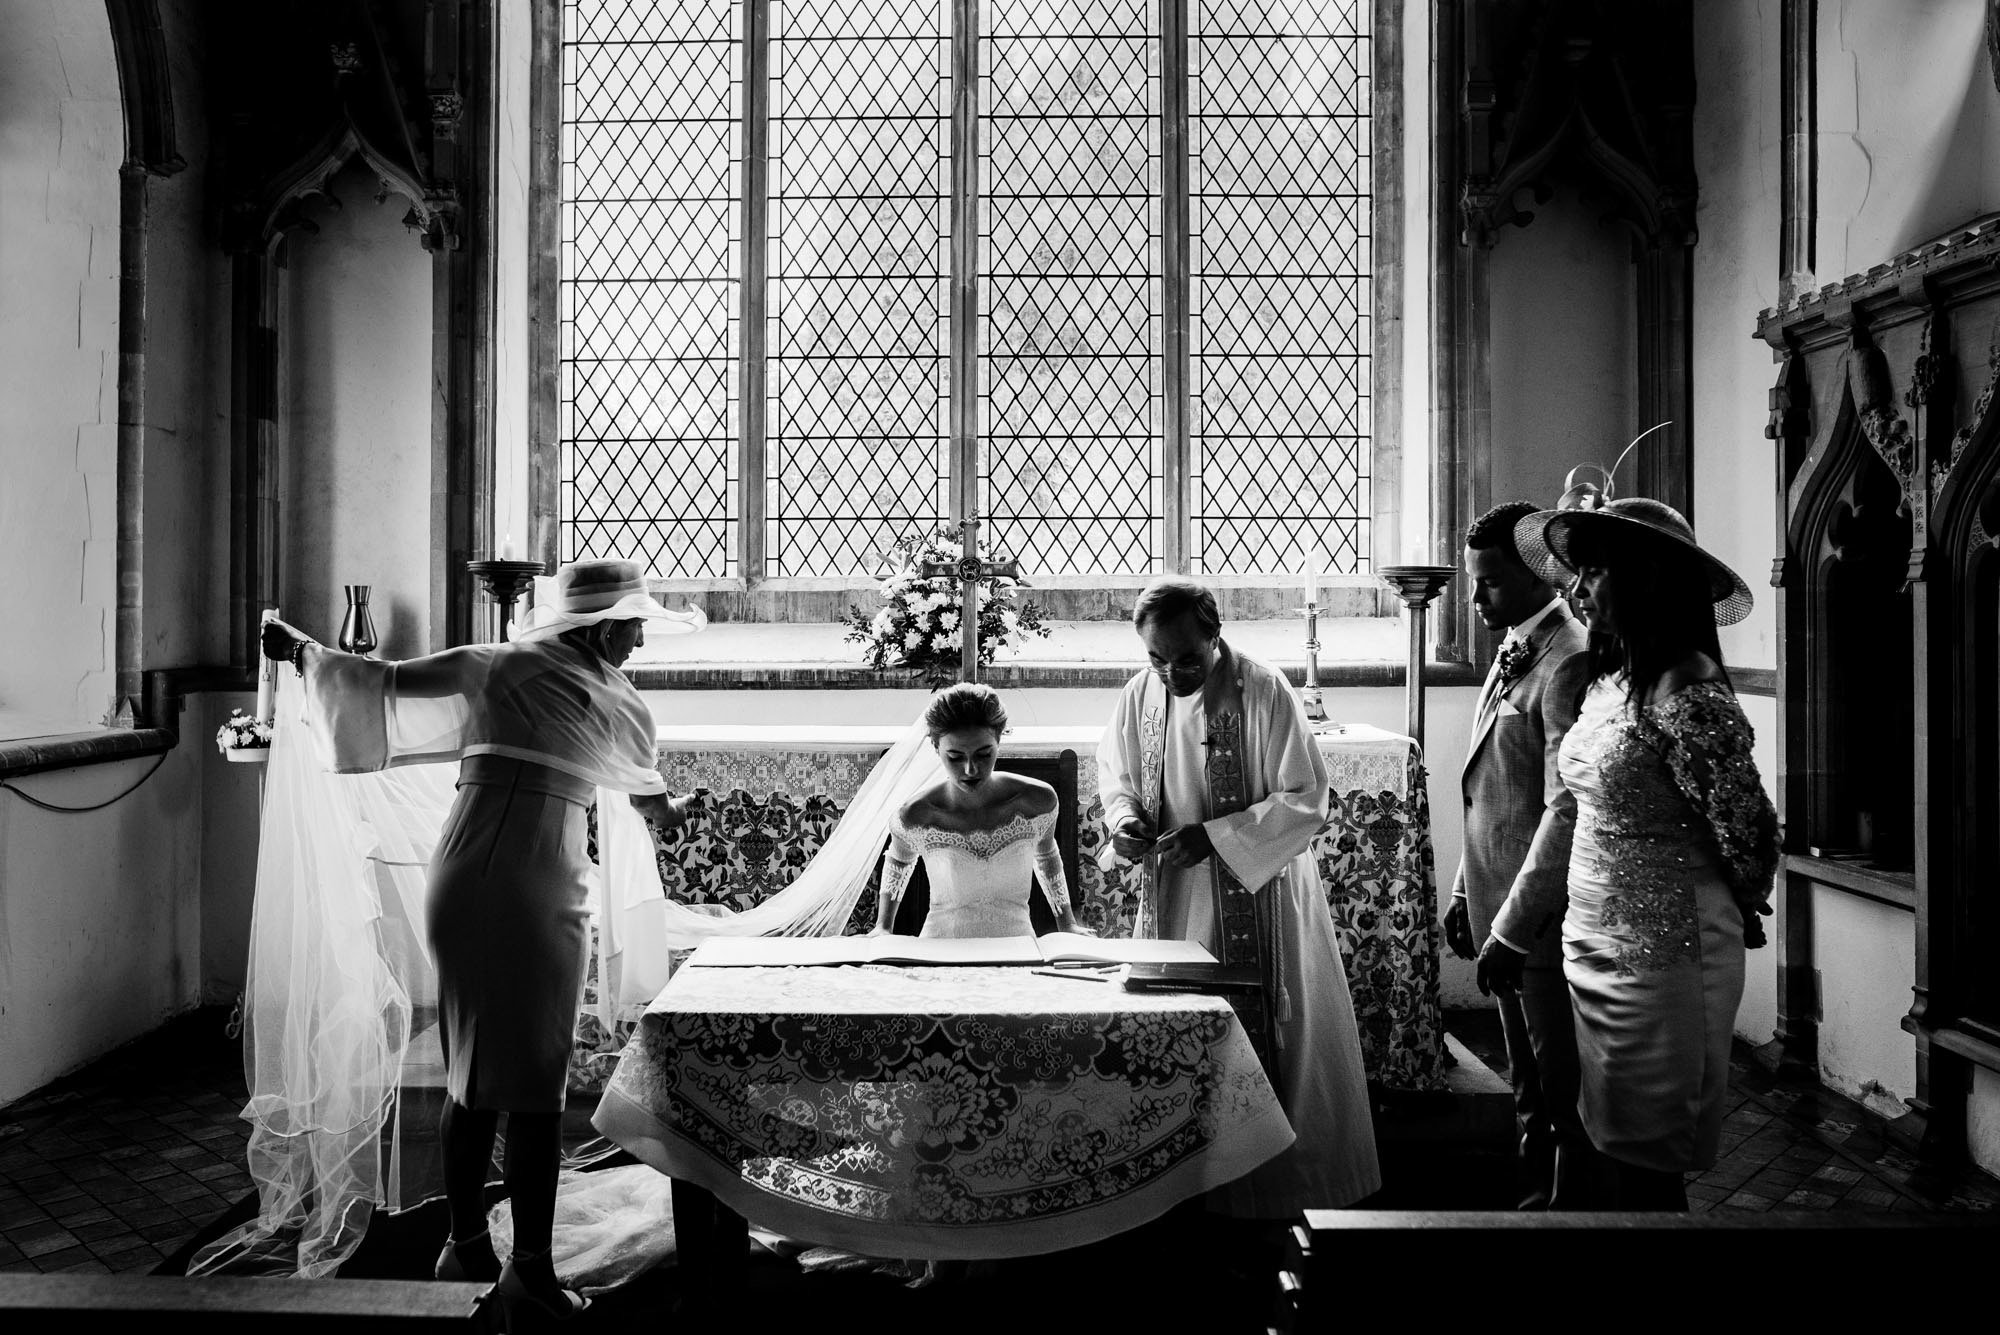 black and White wedding photography-39.jpg